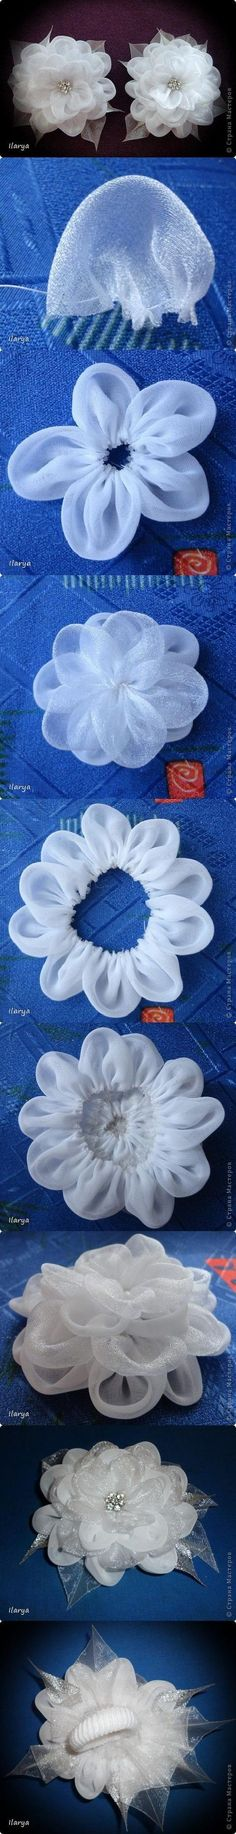 Fabric can be used for all kinds of different projects and this is one that you will love. Making nice little flowers are fun and they go great as hair clips. You just need some fabric Lust and you are set to start your 15 minute project. Once you are done...